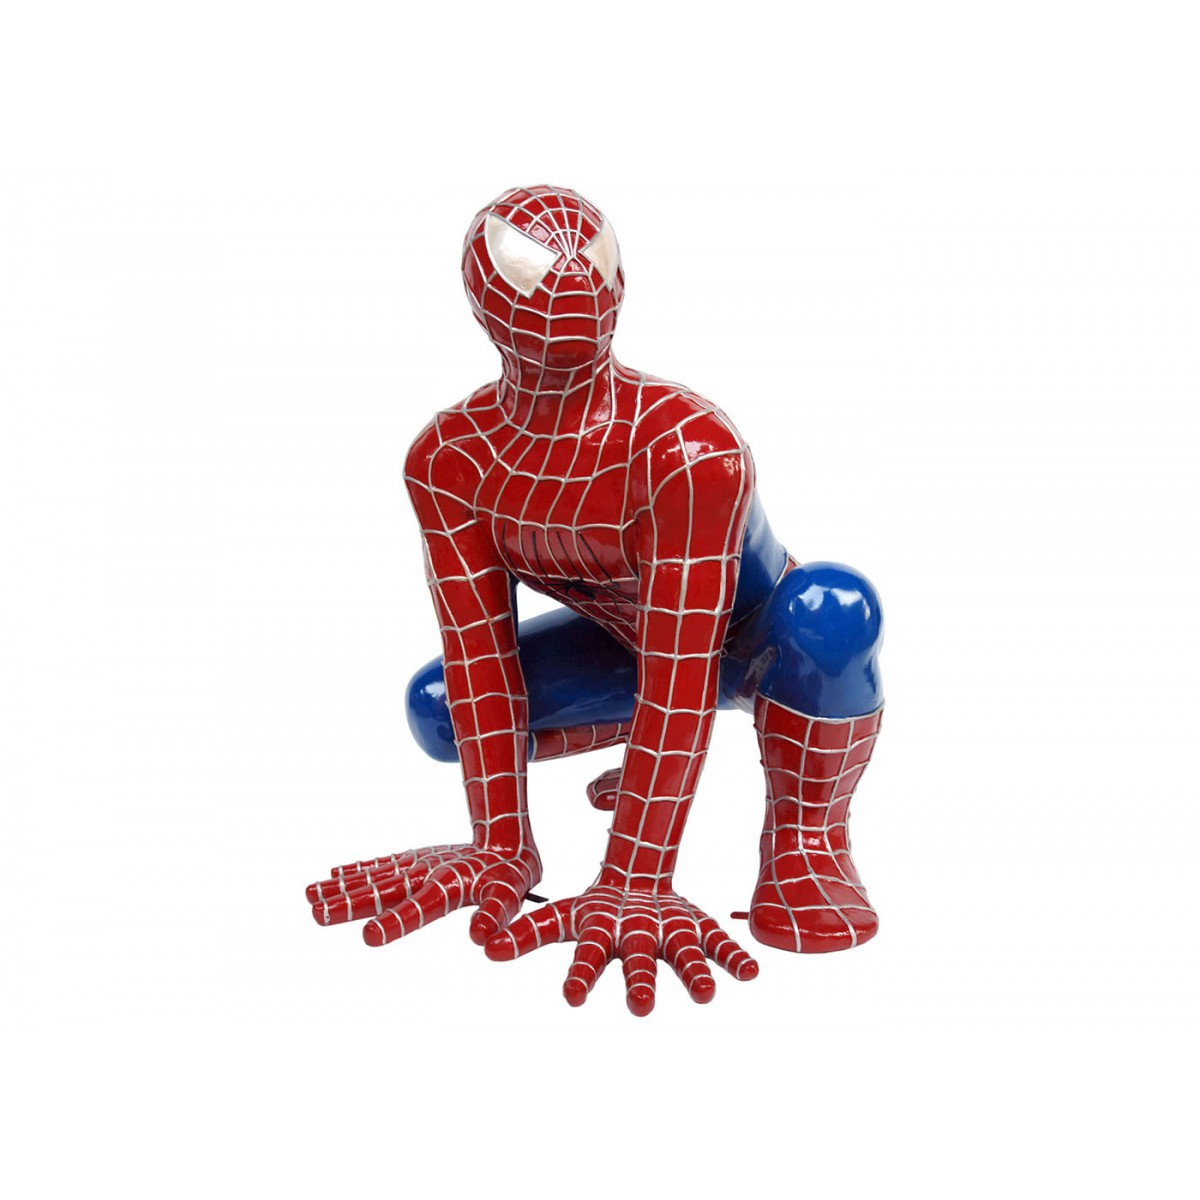 statue spiderman en r sine taille xxl texartes. Black Bedroom Furniture Sets. Home Design Ideas